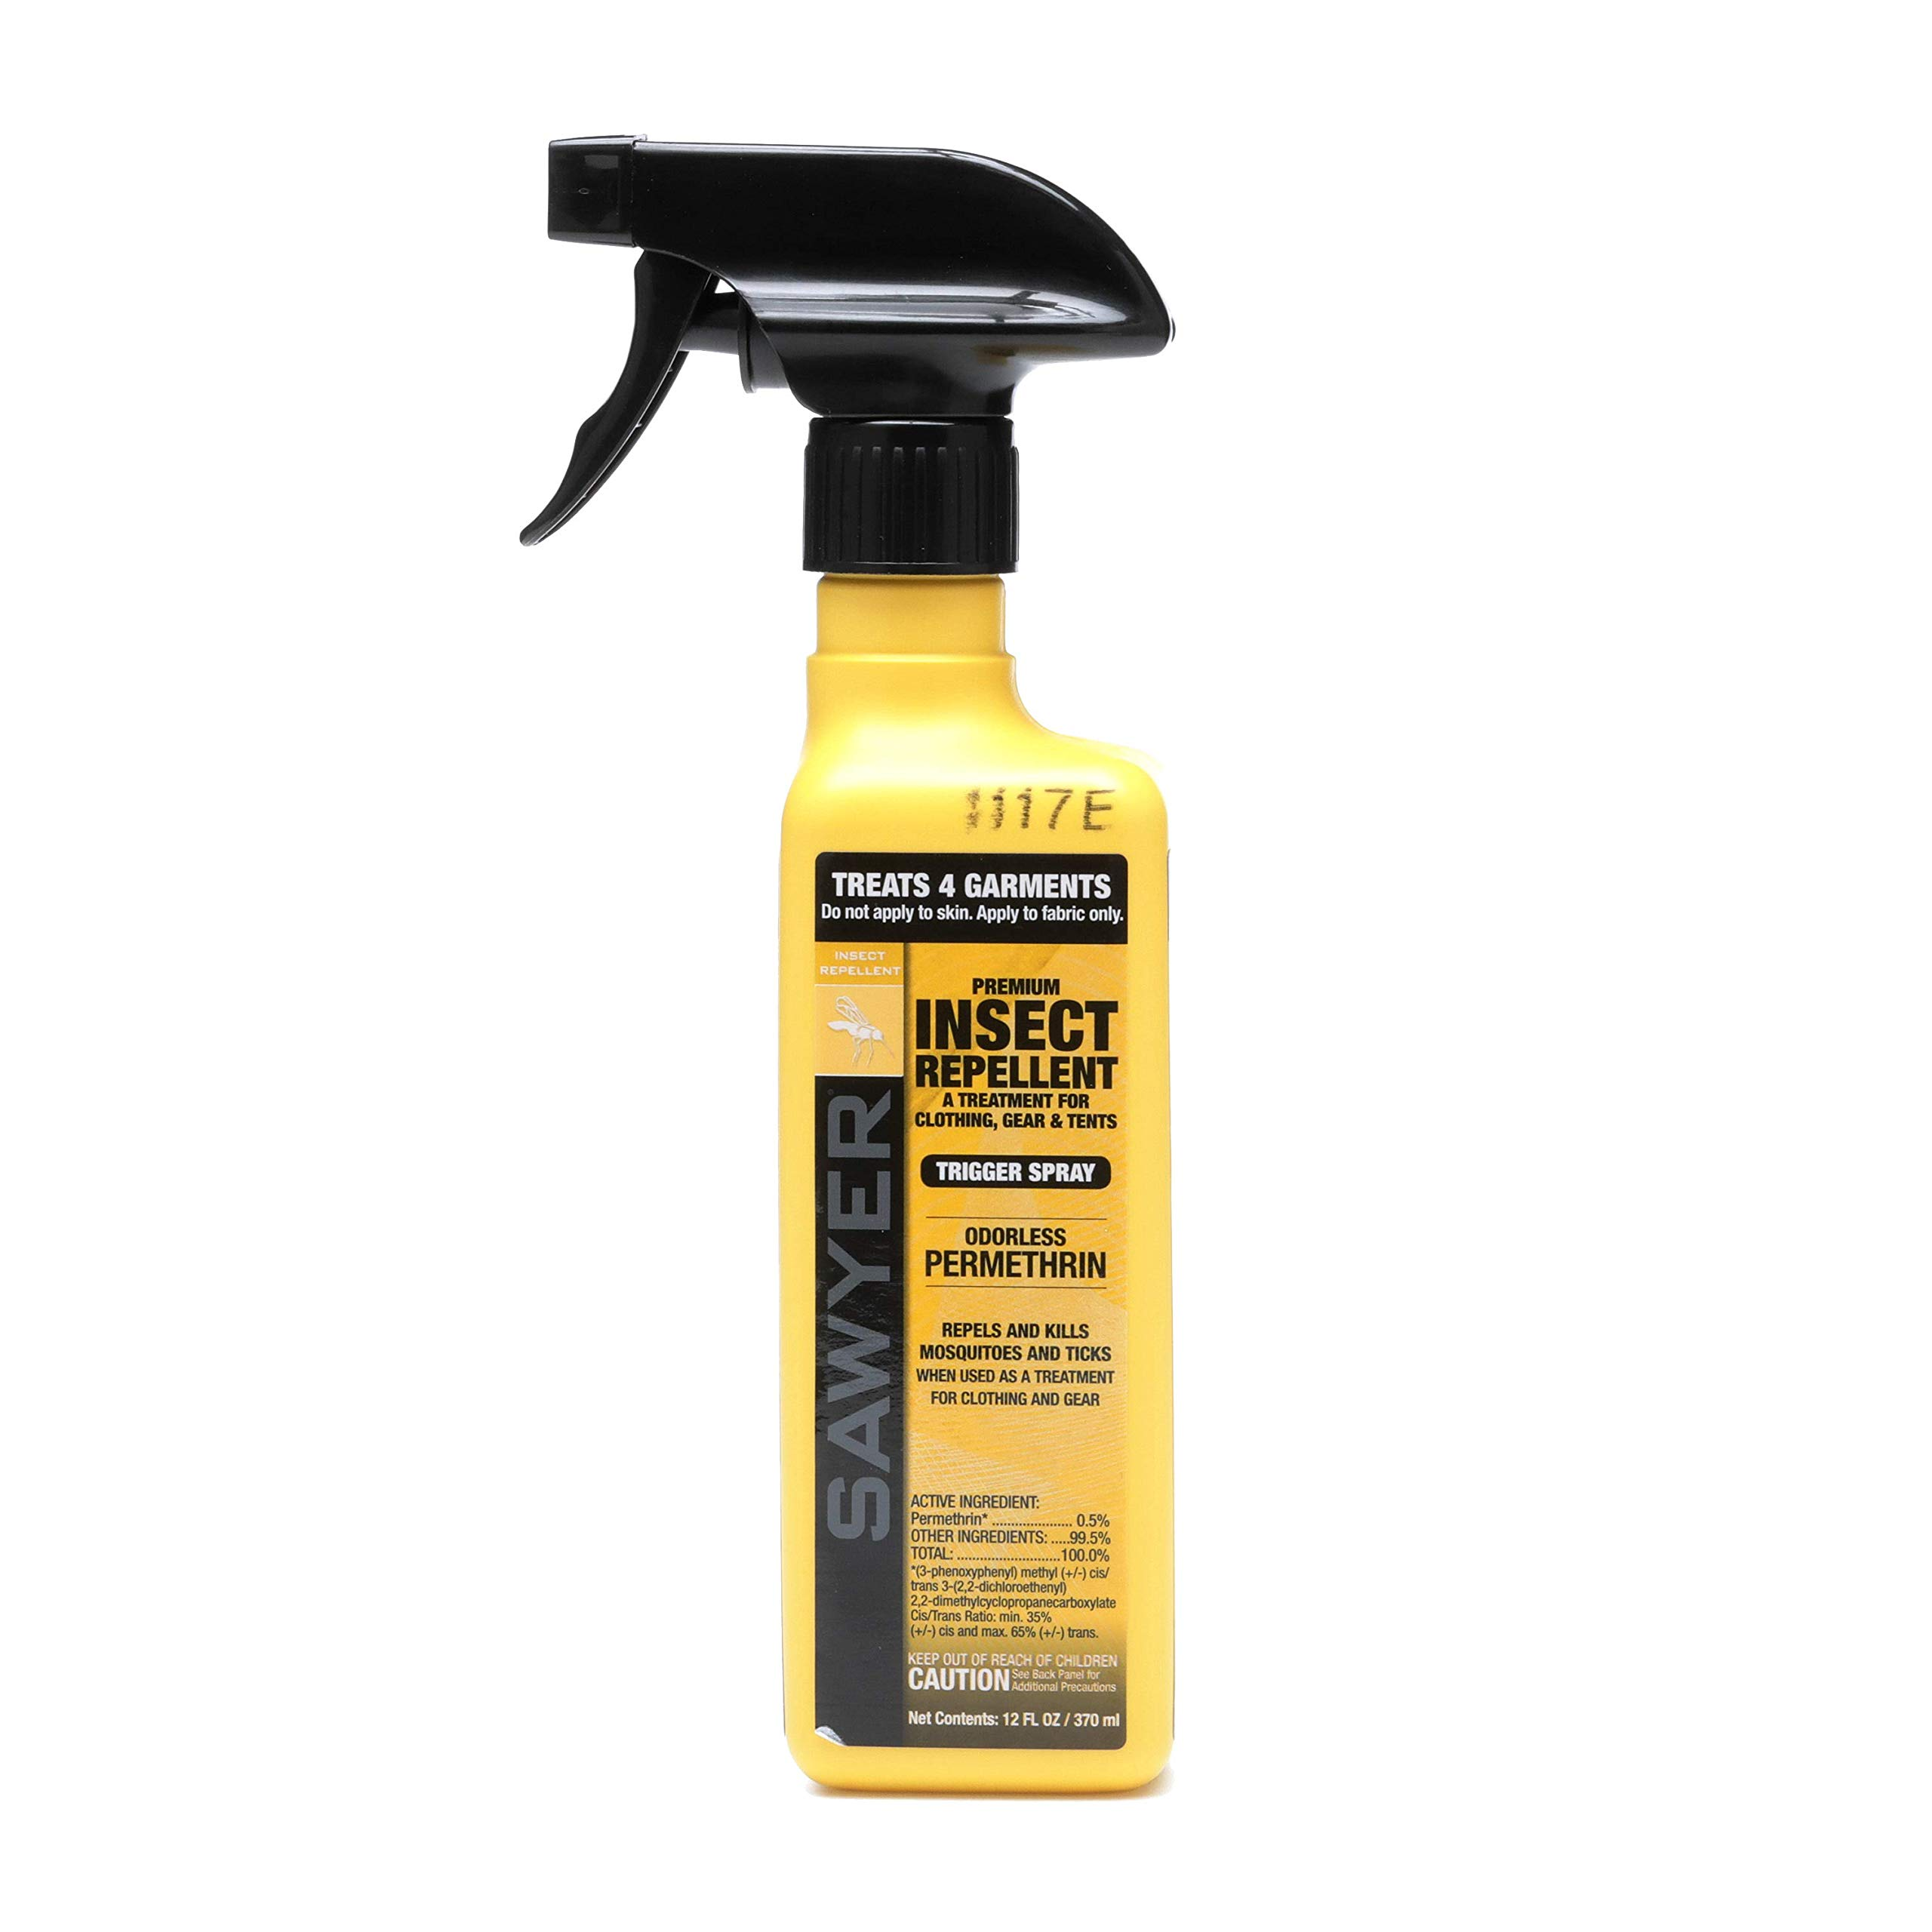 Sawyer Products SP649 Premium Permethrin Clothing Insect Repellent Trigger Spray, 12-Ounce by Sawyer Products